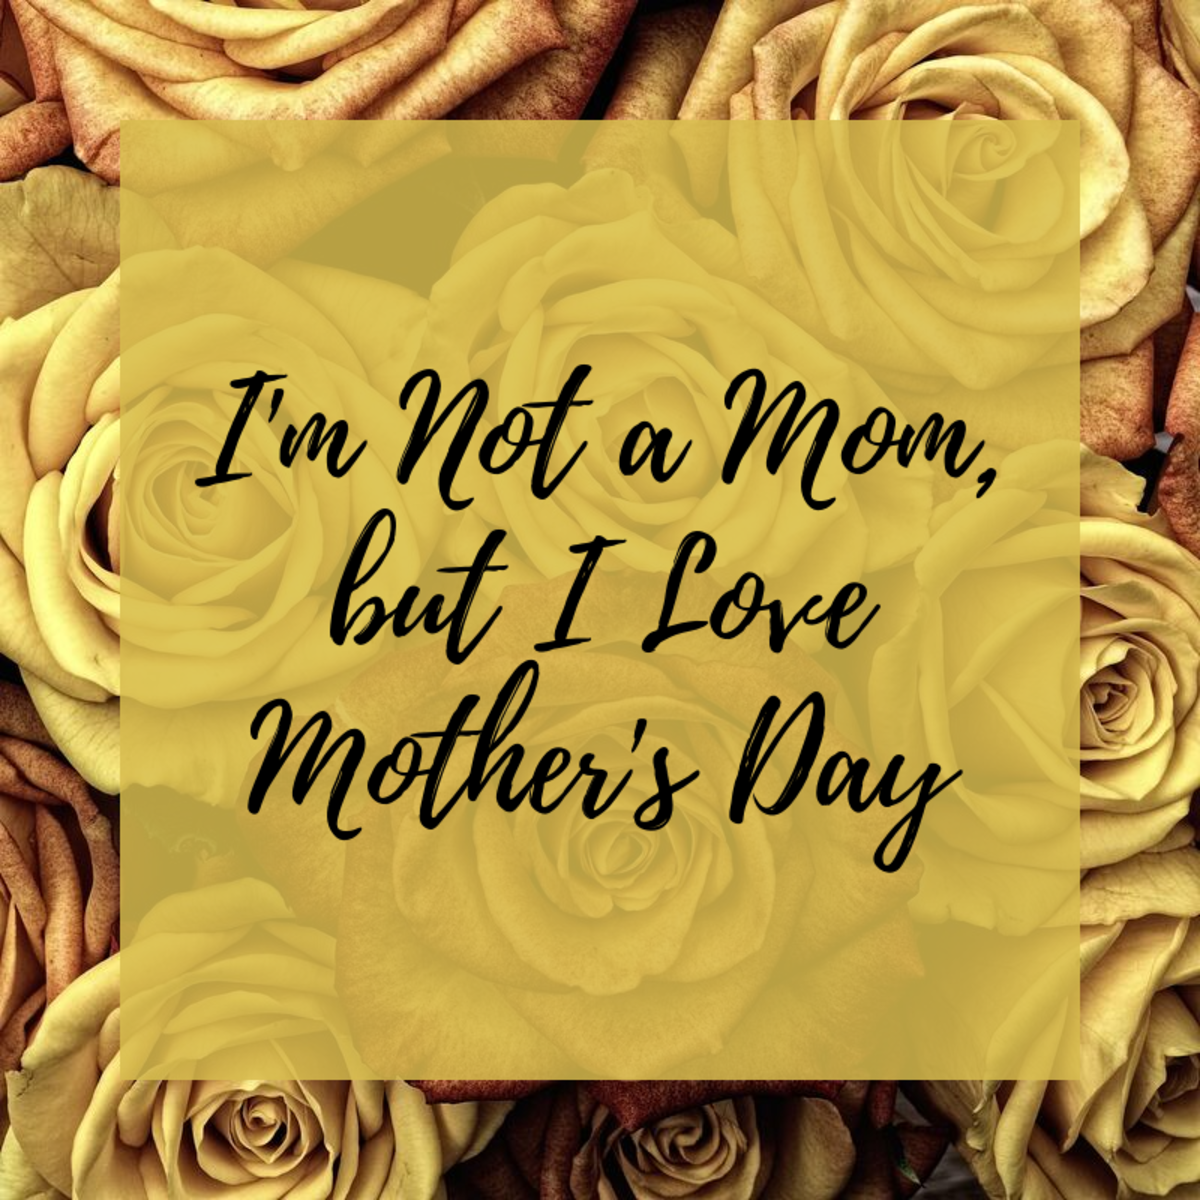 This article explore Mother's Day from the perspective of someone who's not a mom.